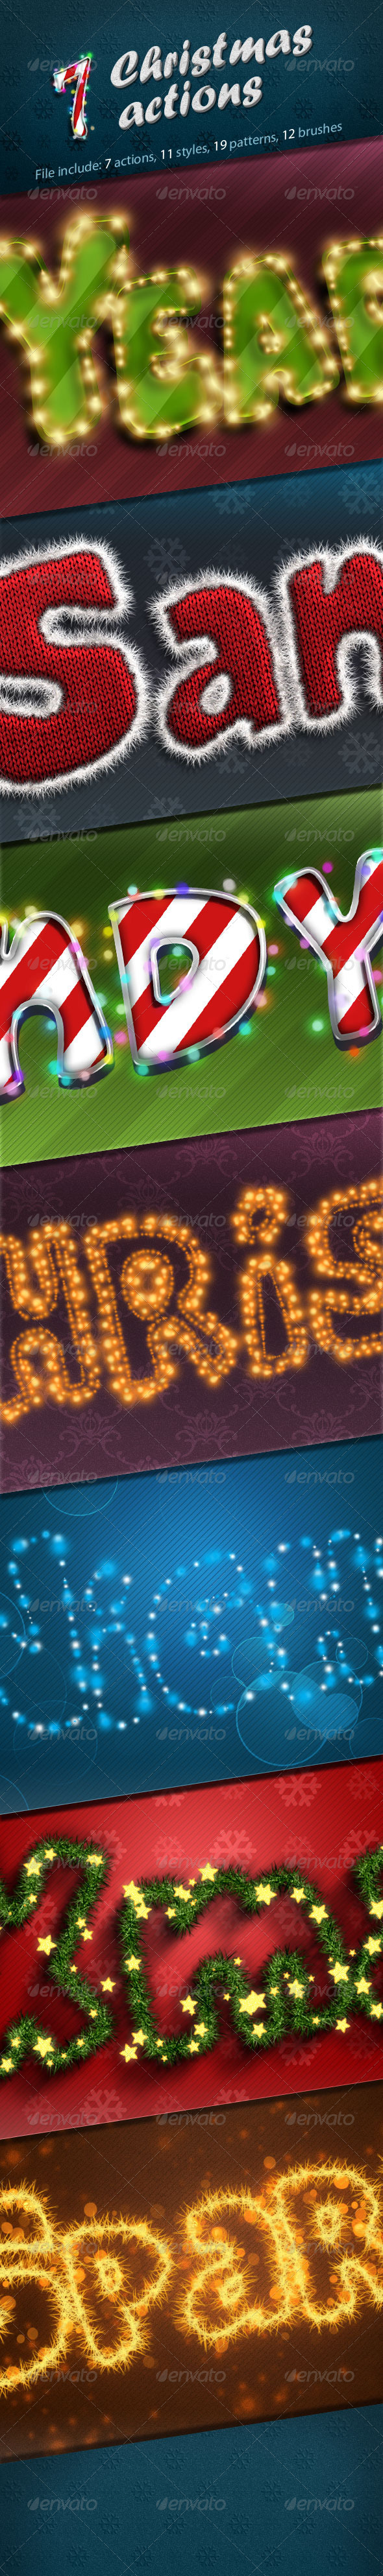 7 Christmas Actions - Text Effects Styles